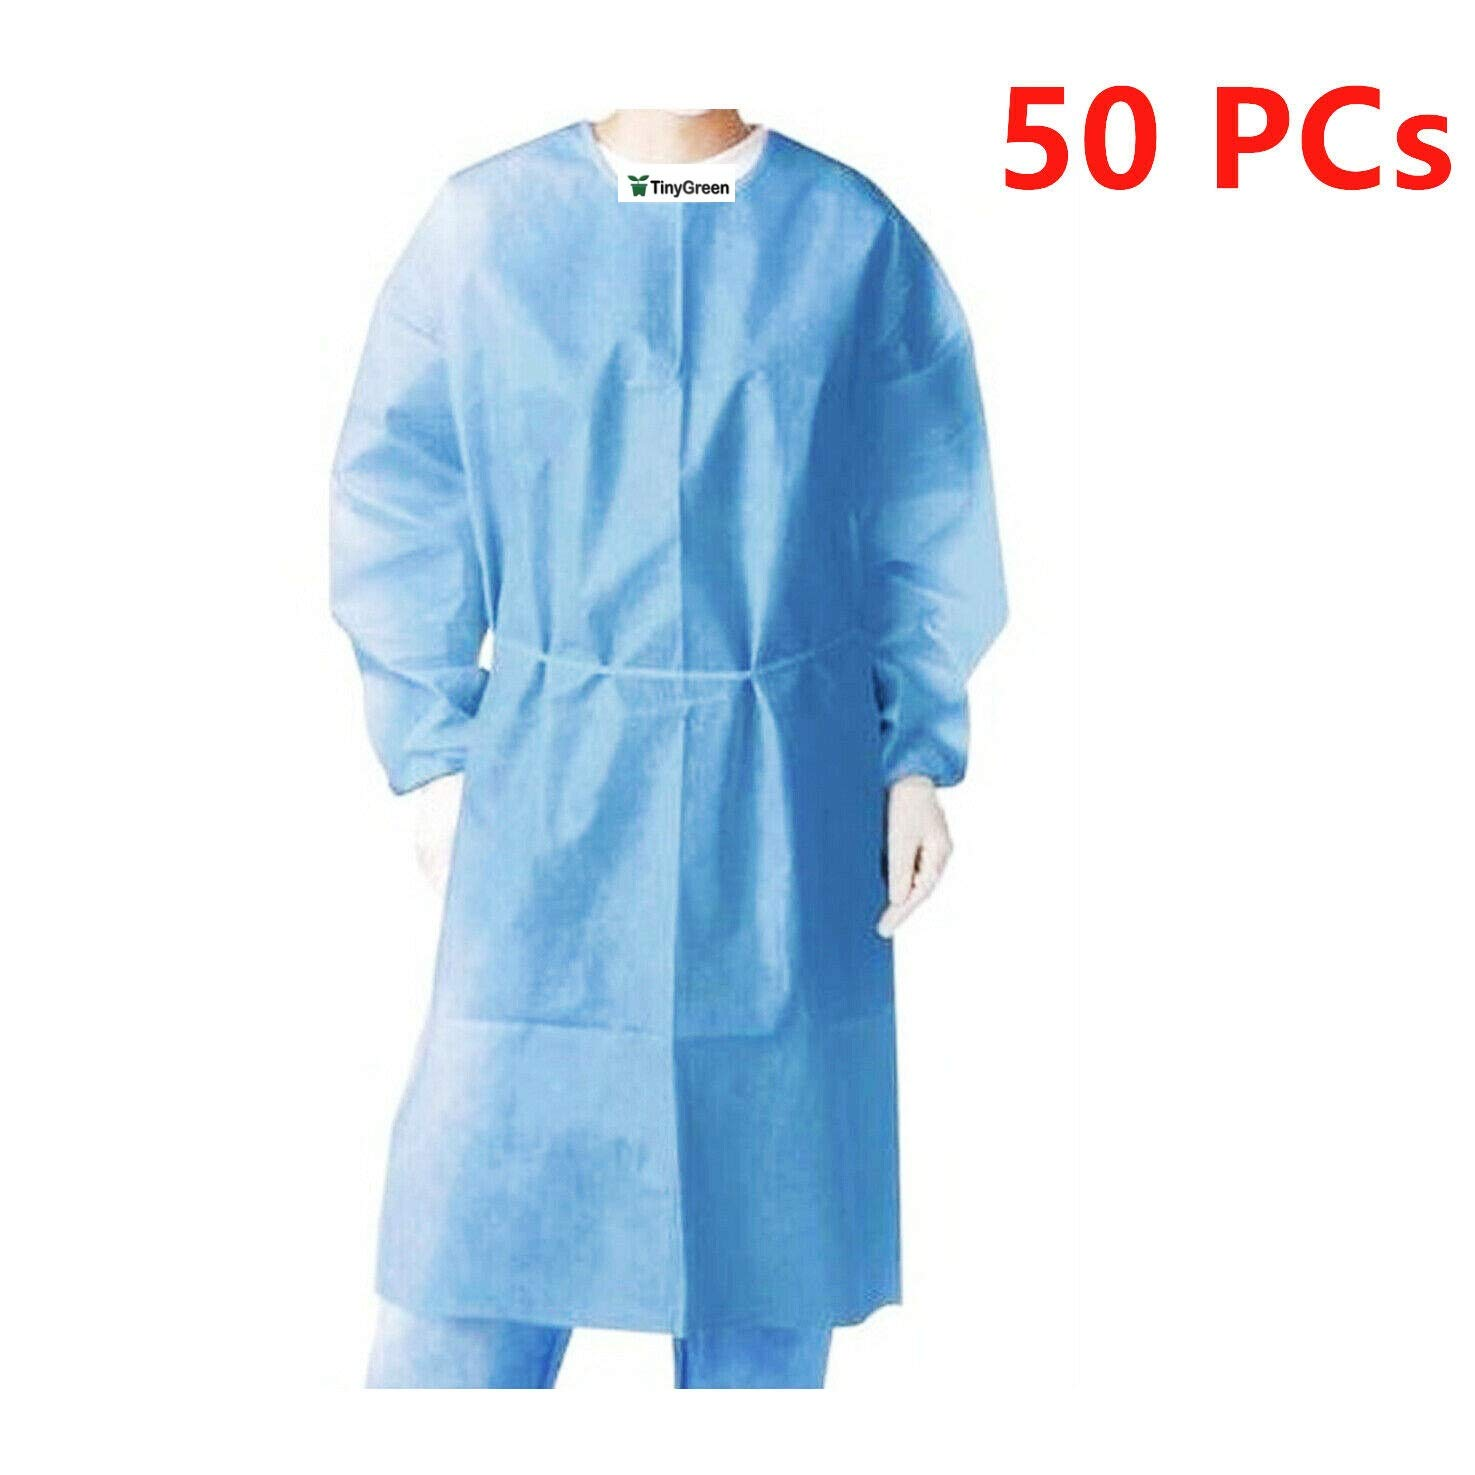 Isolation Gowns Knit Cuff One Size Fits Non-Woven, Latex Free, Splash Resistant, All Dental Medical Disposable 50 Pieces/1 Box Blue Color